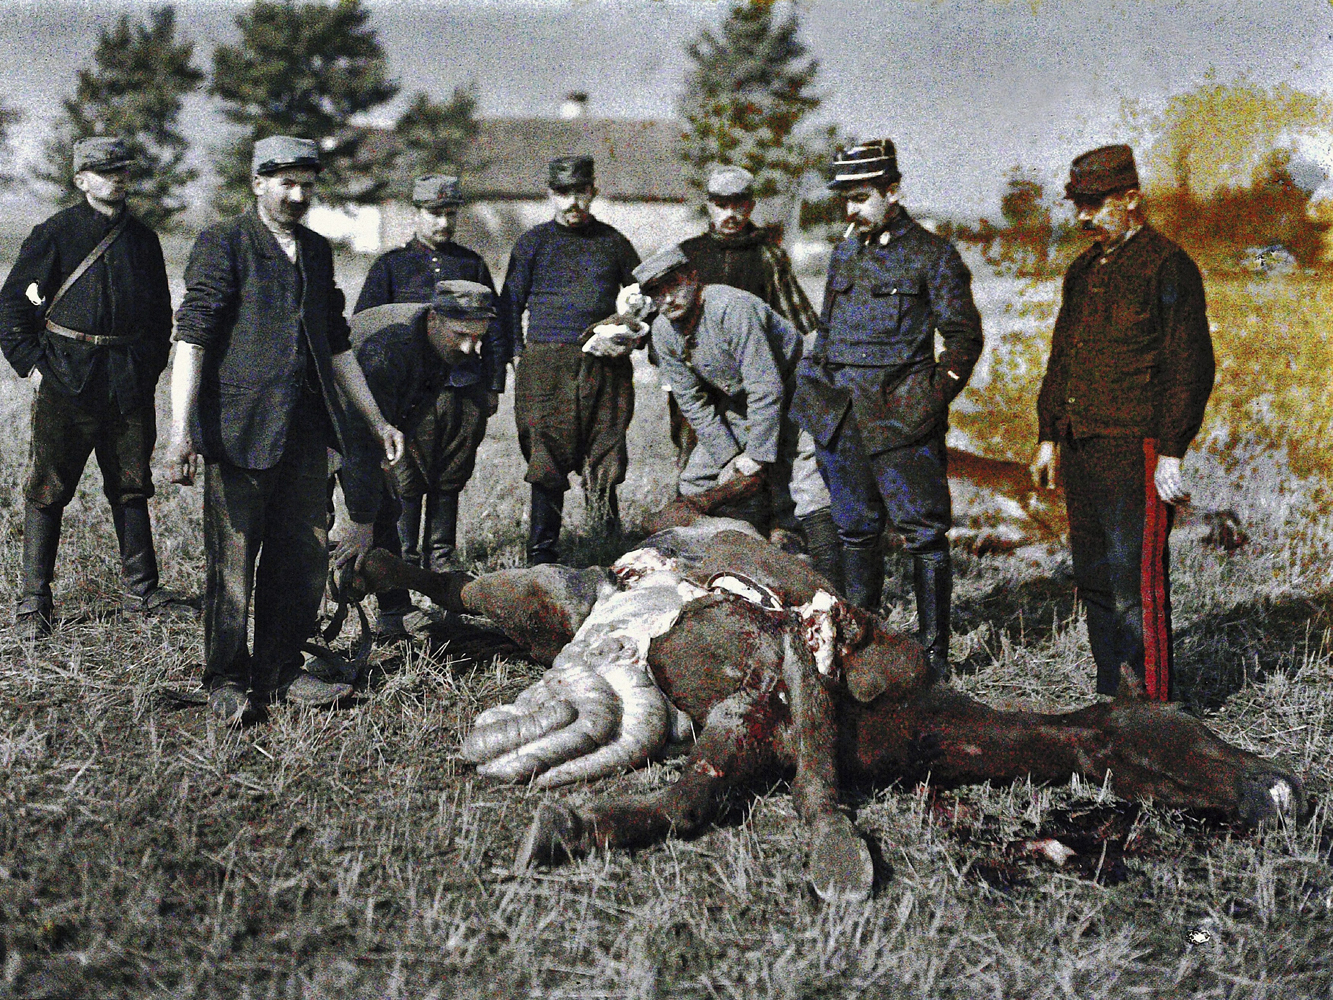 Nine French soldiers investigate a fatally injured horse on the Western Front.